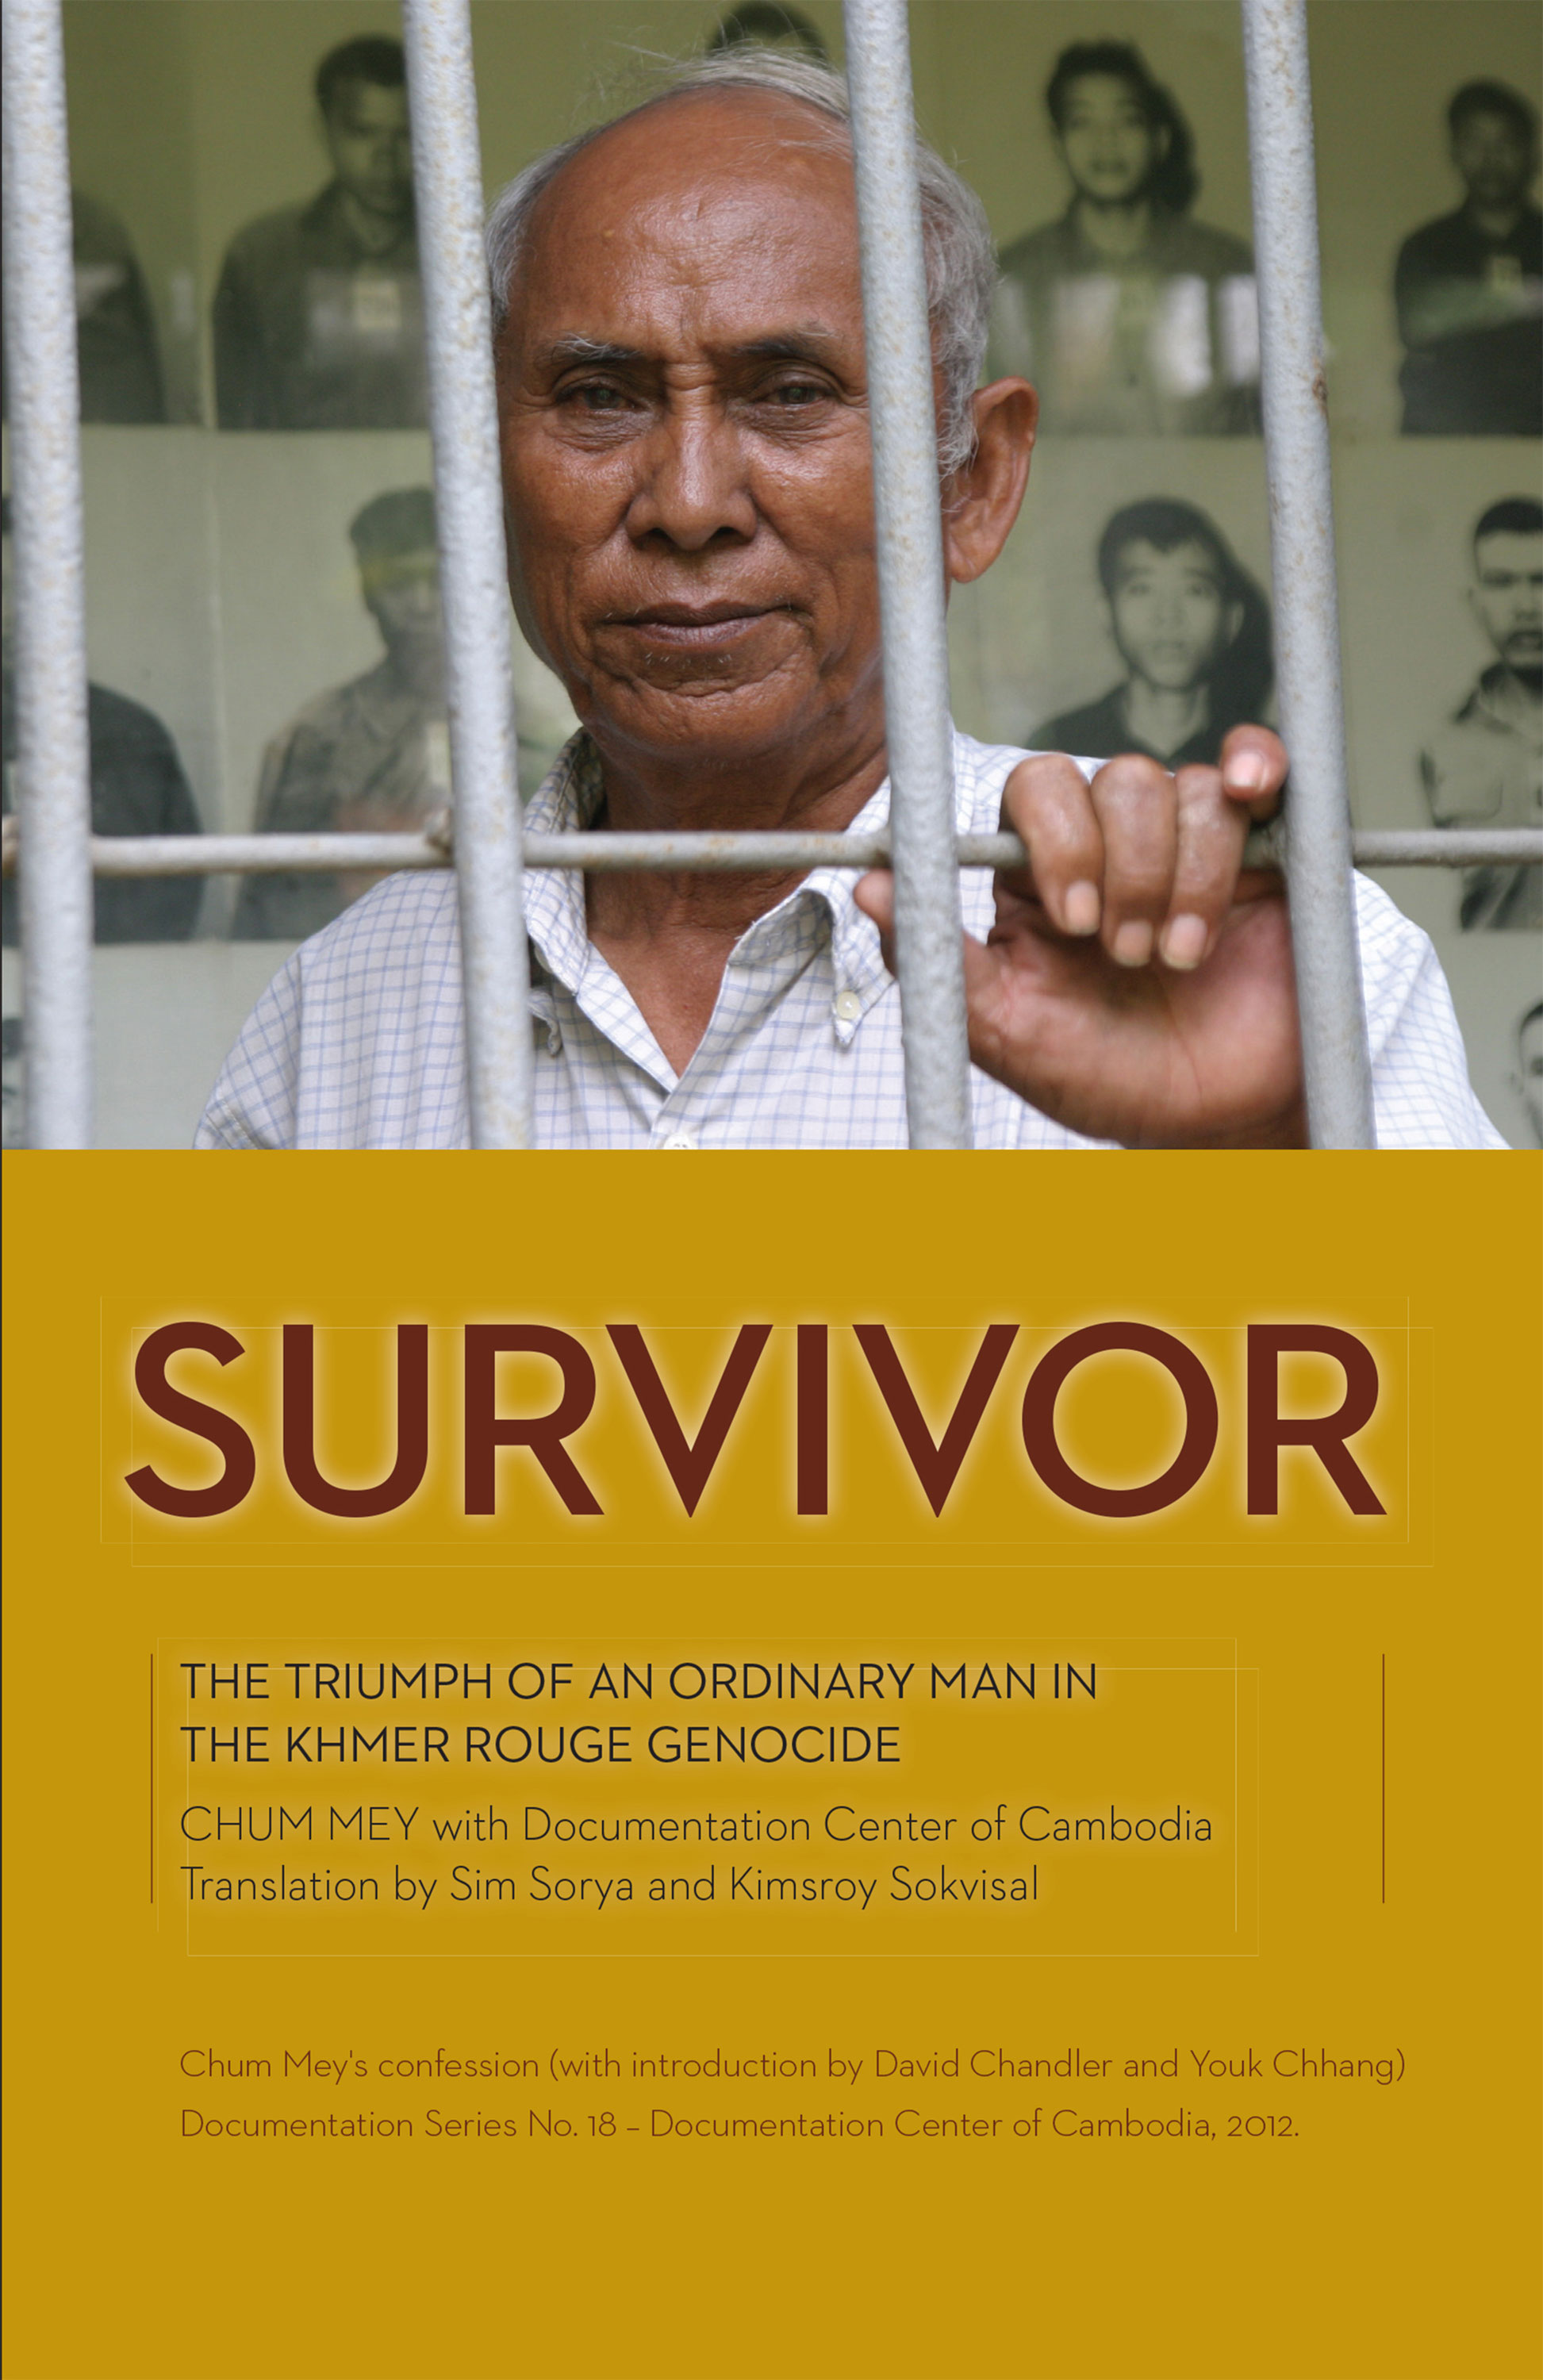 SURVIVOR: The triumph of an ordinary man in the Khmer Rouge  Genocide  CHUM MEY with Documentation Center of Cambodia, Translation by Sim Sorya and Kimsroy Sokvisal (2012)